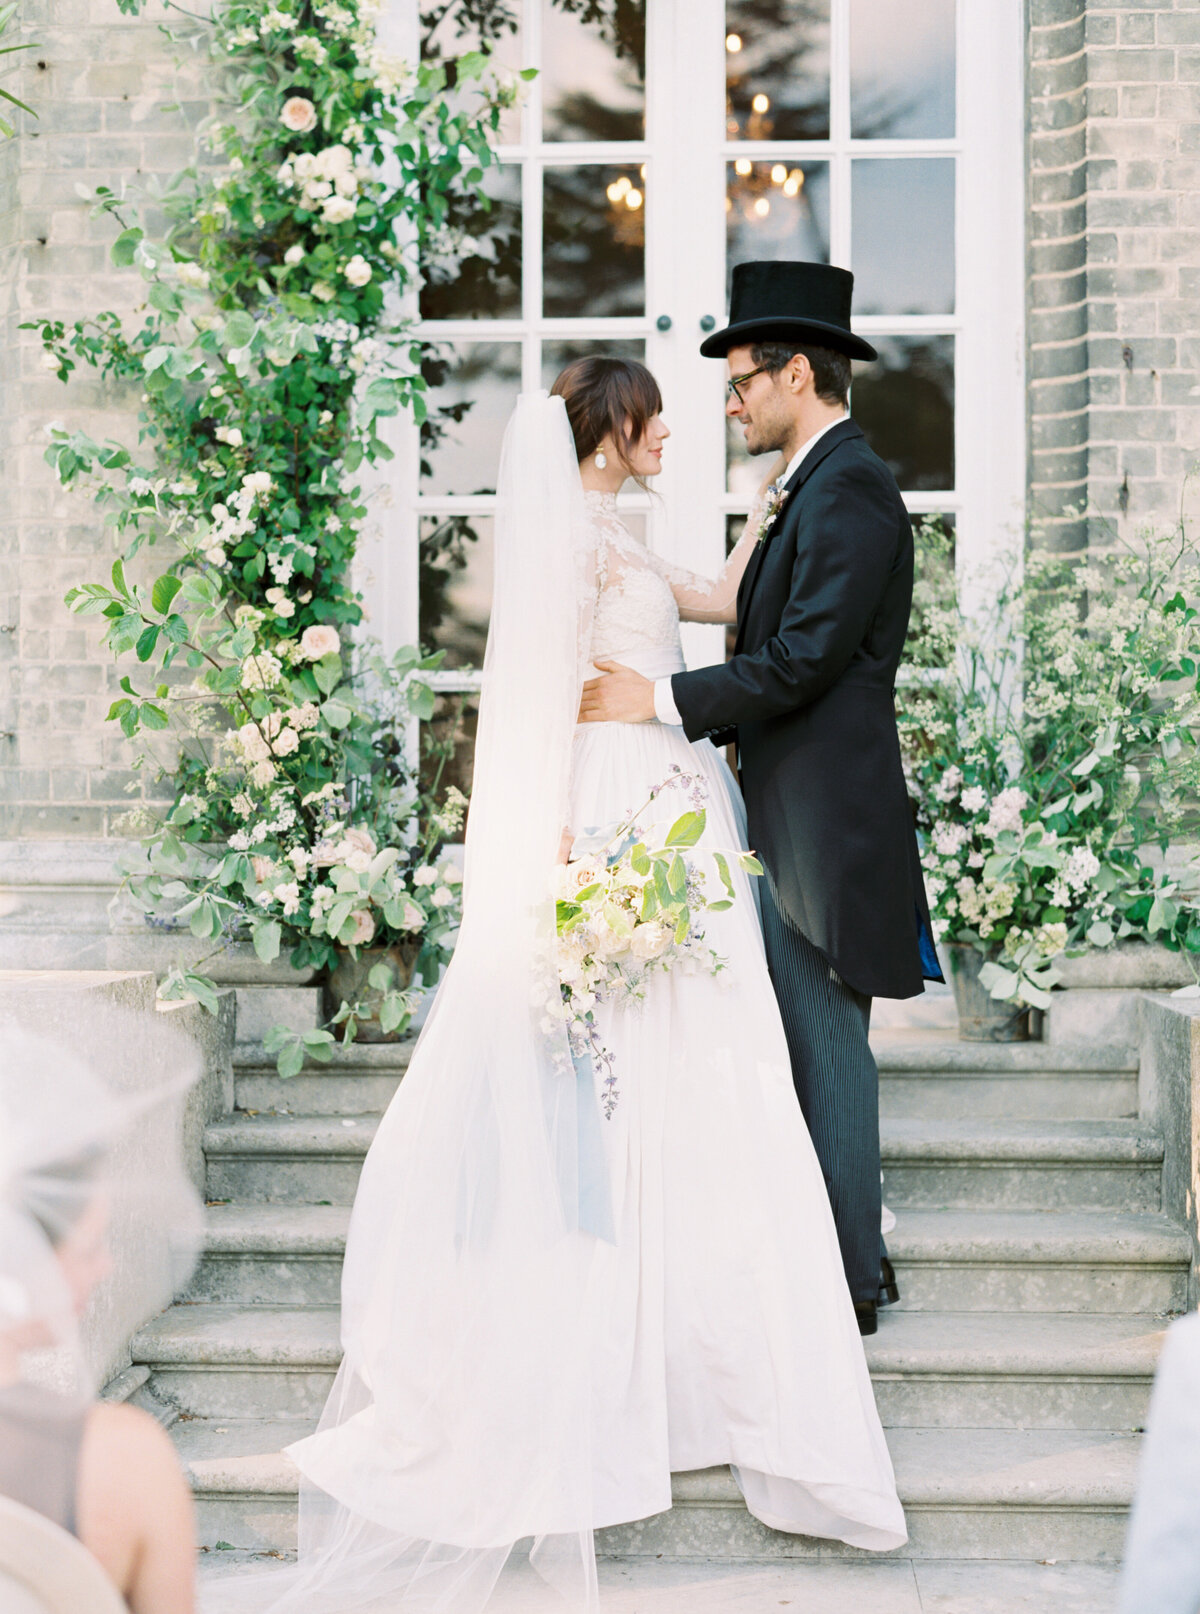 TiffaneyChildsPhotography-LondonWeddingPhotographer-Julieta+Cedrick-HedsorHouseWedding-232